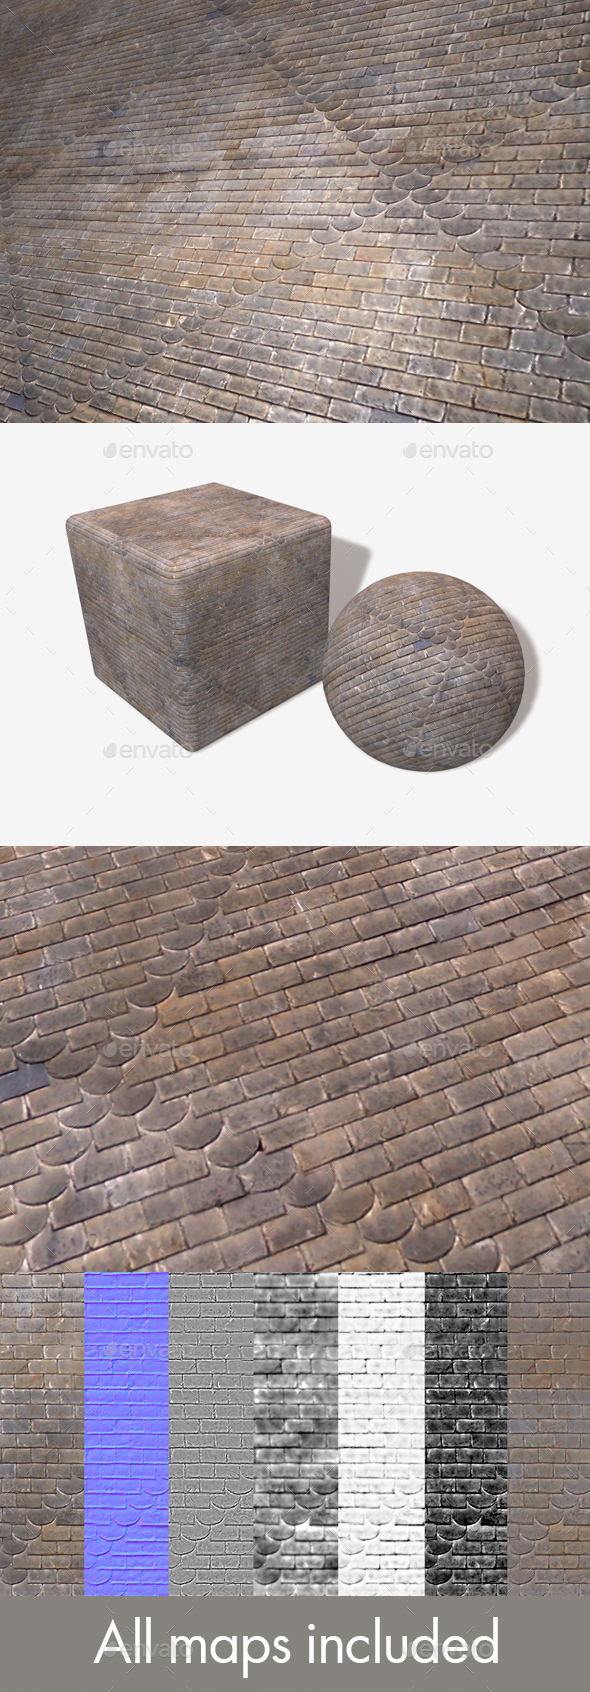 Patterned Roof Tiles Seamless Texture - 3DOcean Item for Sale